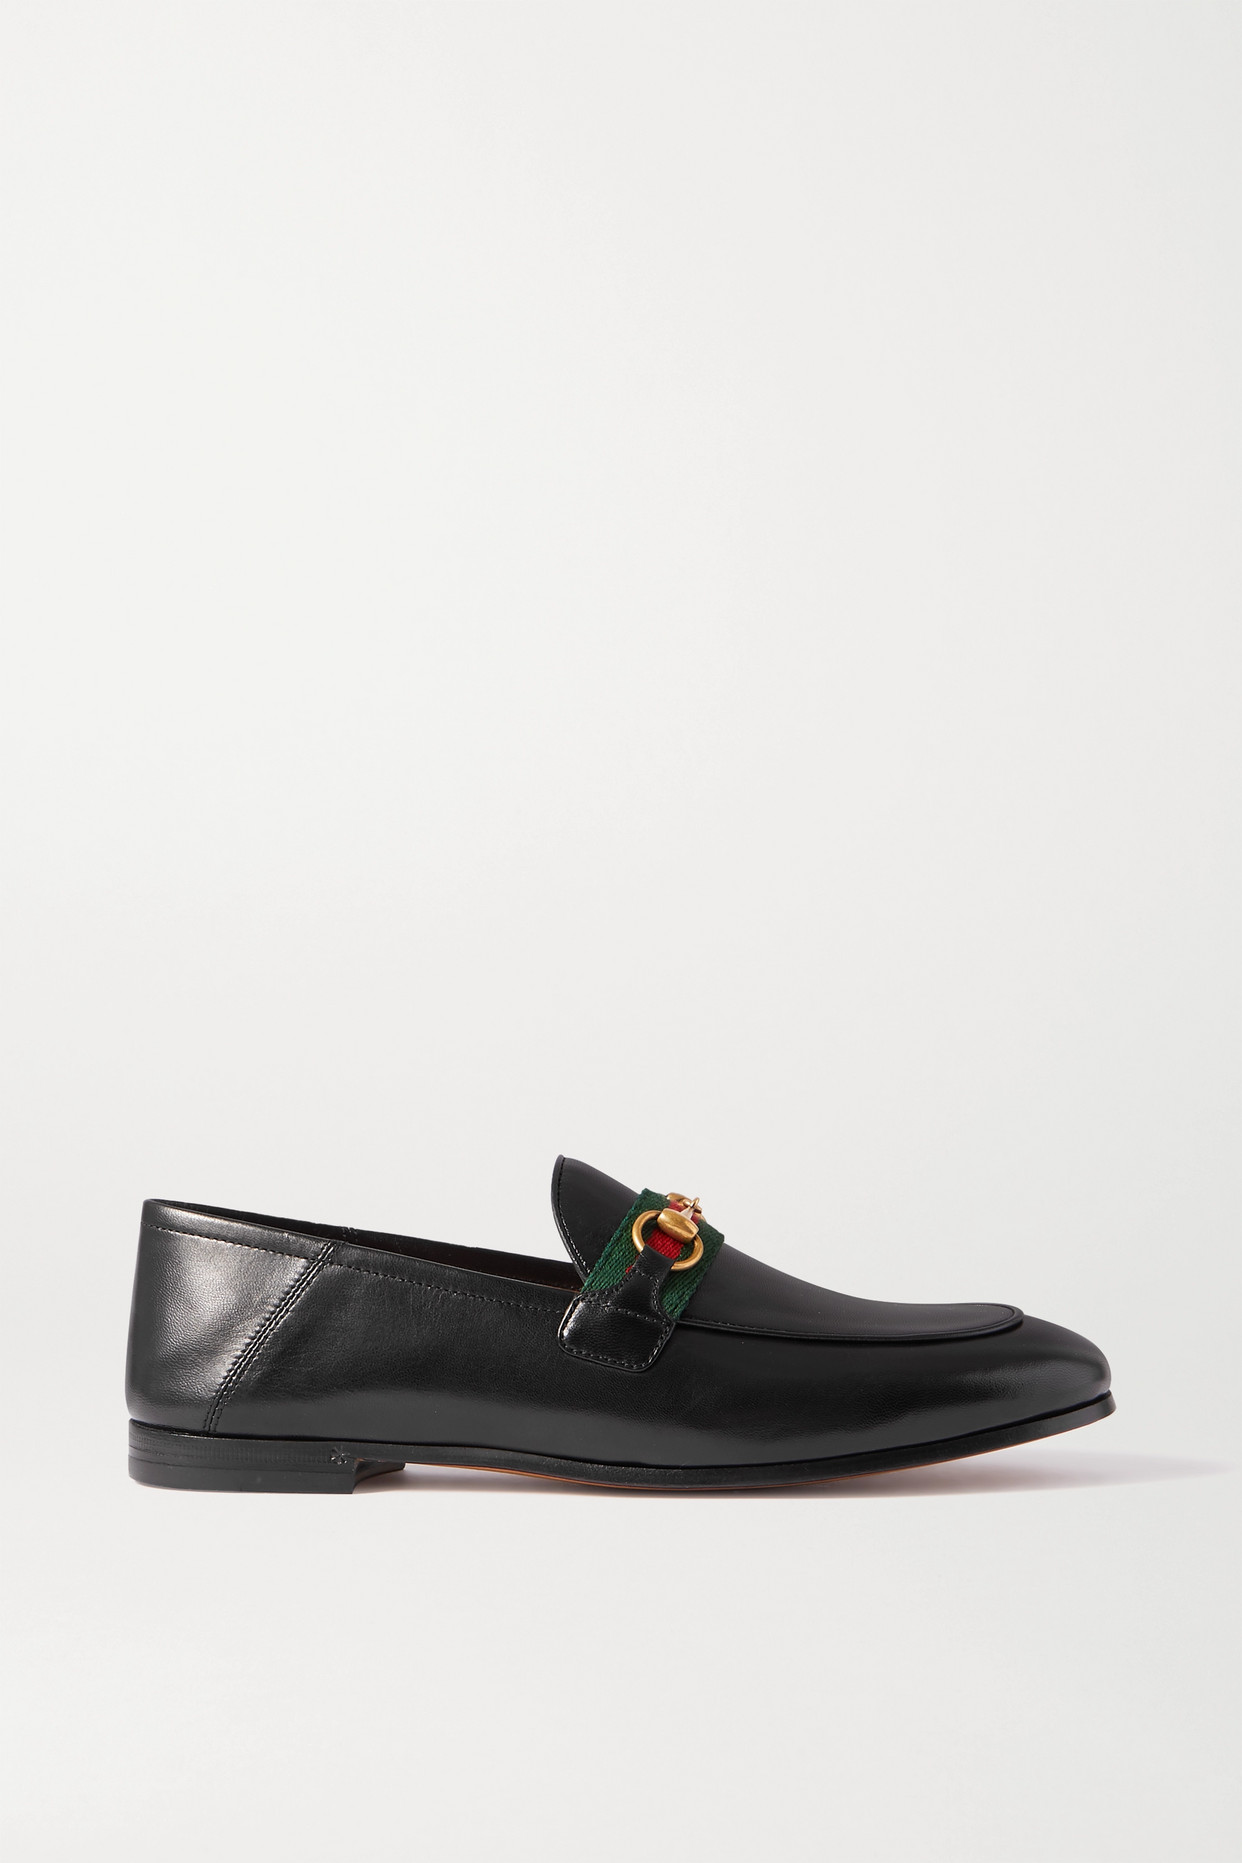 GUCCI - Brixton Horsebit-detailed Webbing-trimmed Leather Collapsible-heel Loafers - Black - IT38